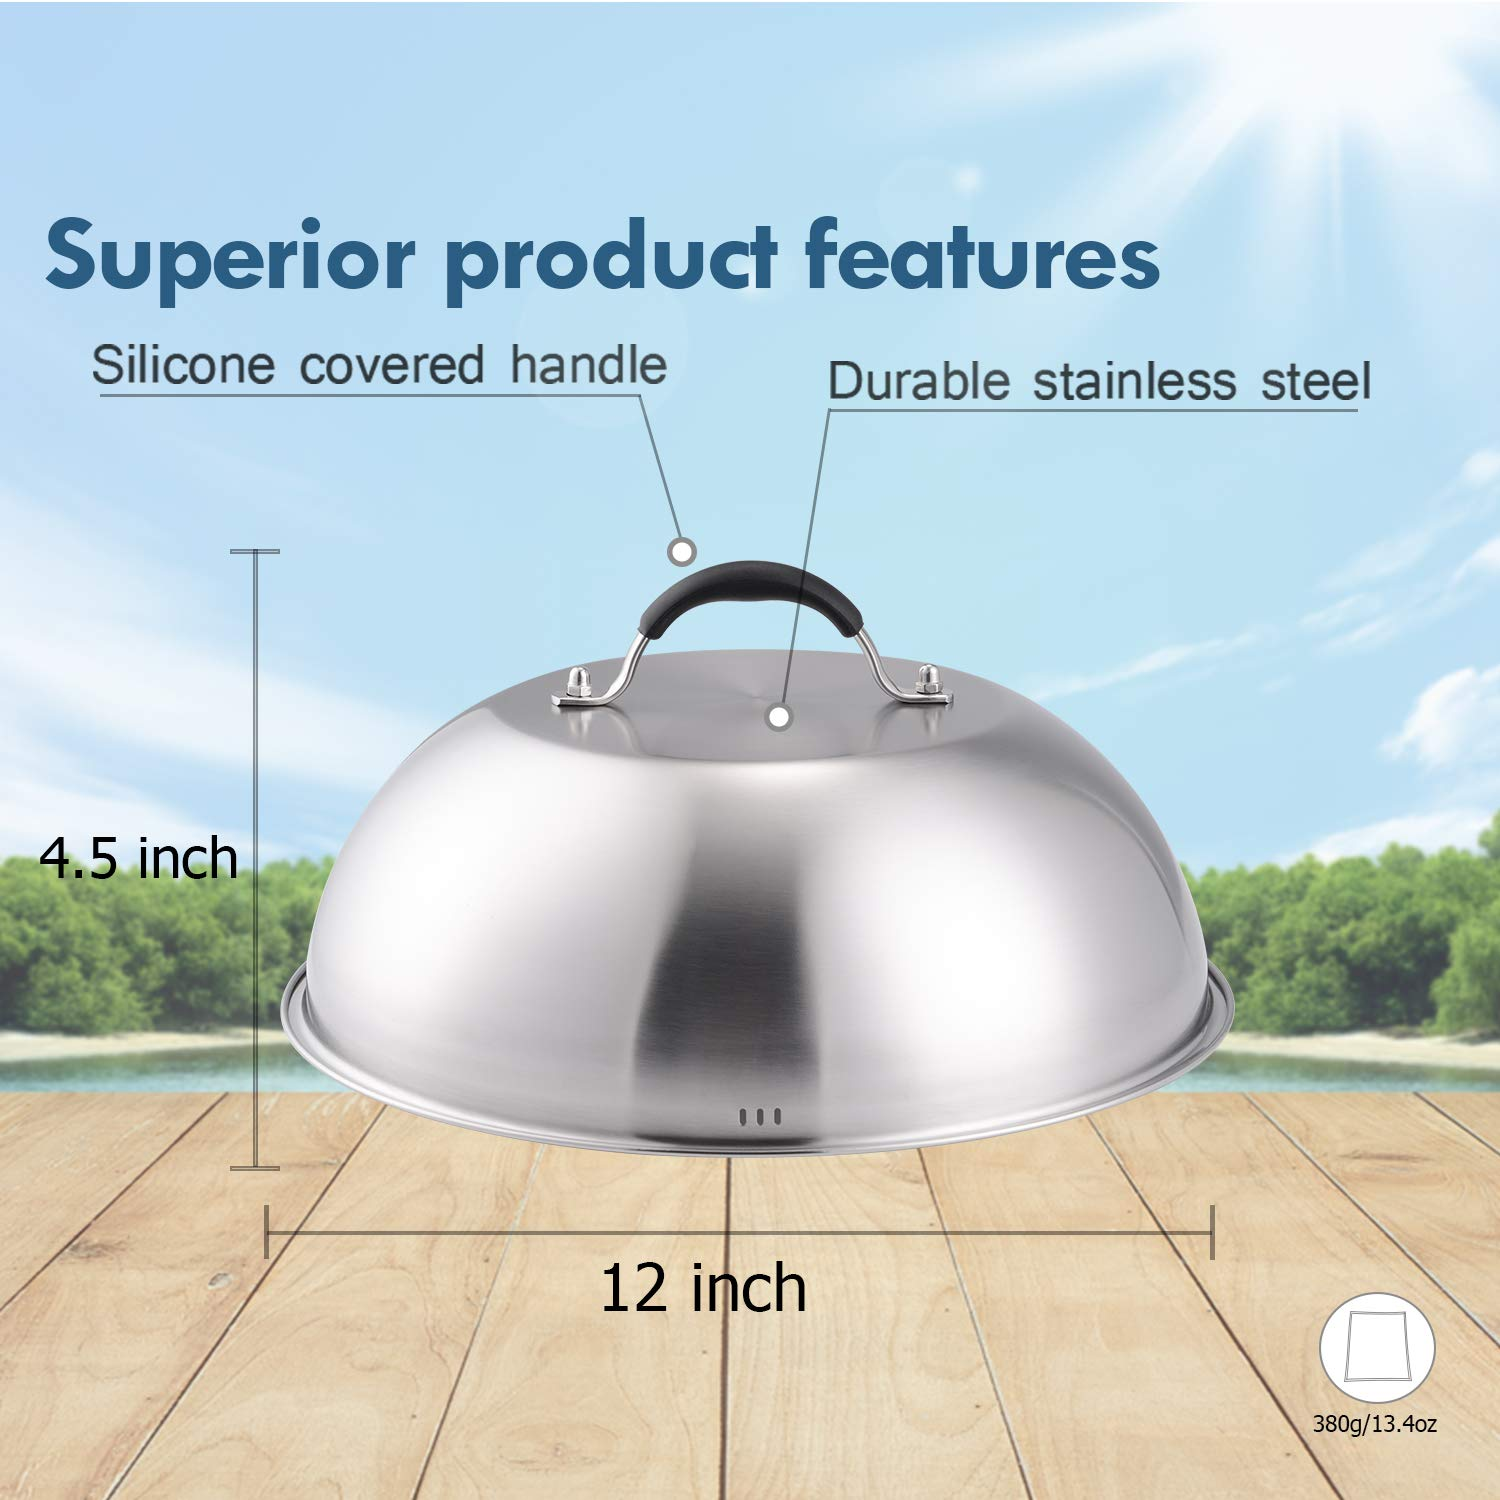 12 Inch Heavy-duty Cheese Melting Dome - 18/8 Stainless Steel Griddle Grill Accessories - Durable Round Basting, Steaming Cover - Heat Resistant Handle for Flat Top Griddle Grill Indoor/Outdoor by HOUSE AGAIN (Image #2)